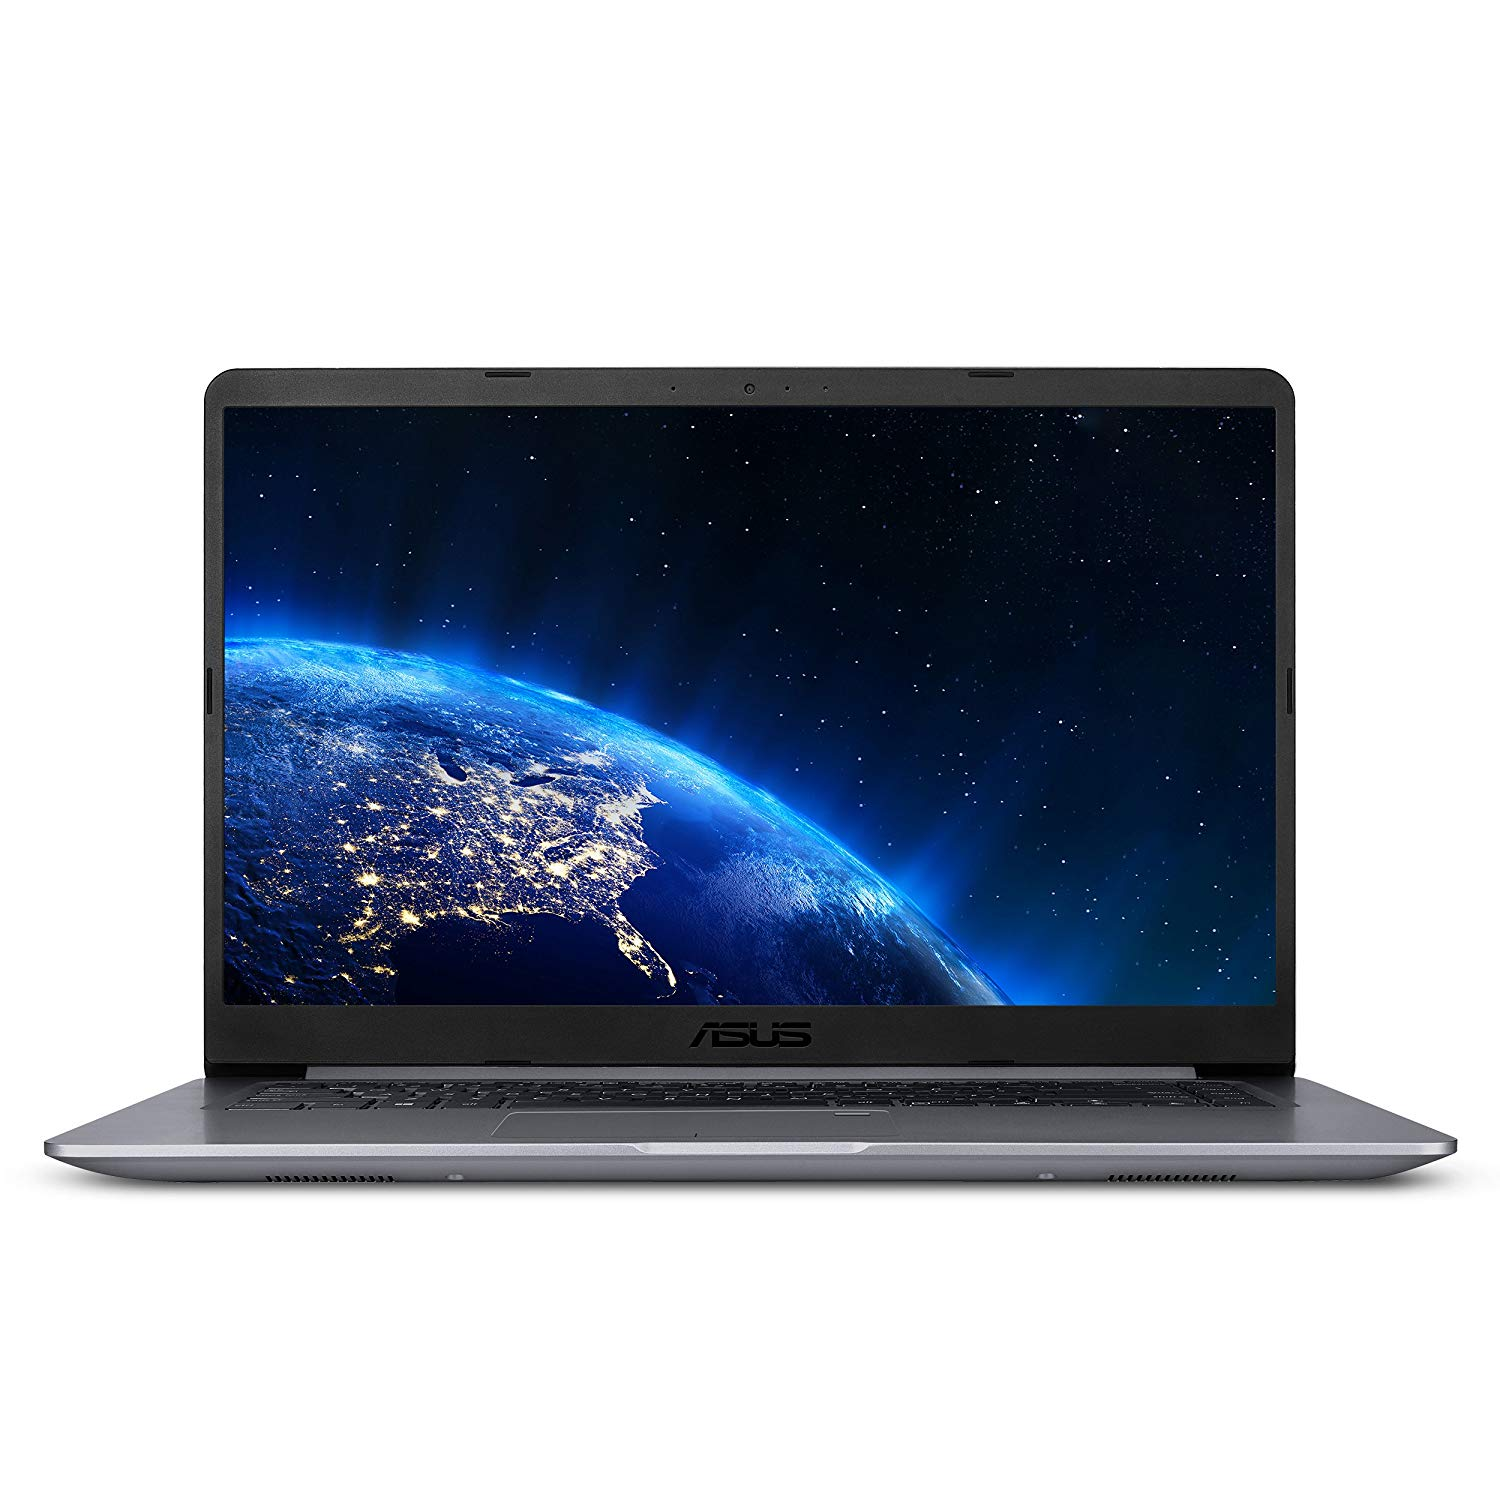 Cheapest Laptops to Run AutoCAD 2019 - Value Nomad